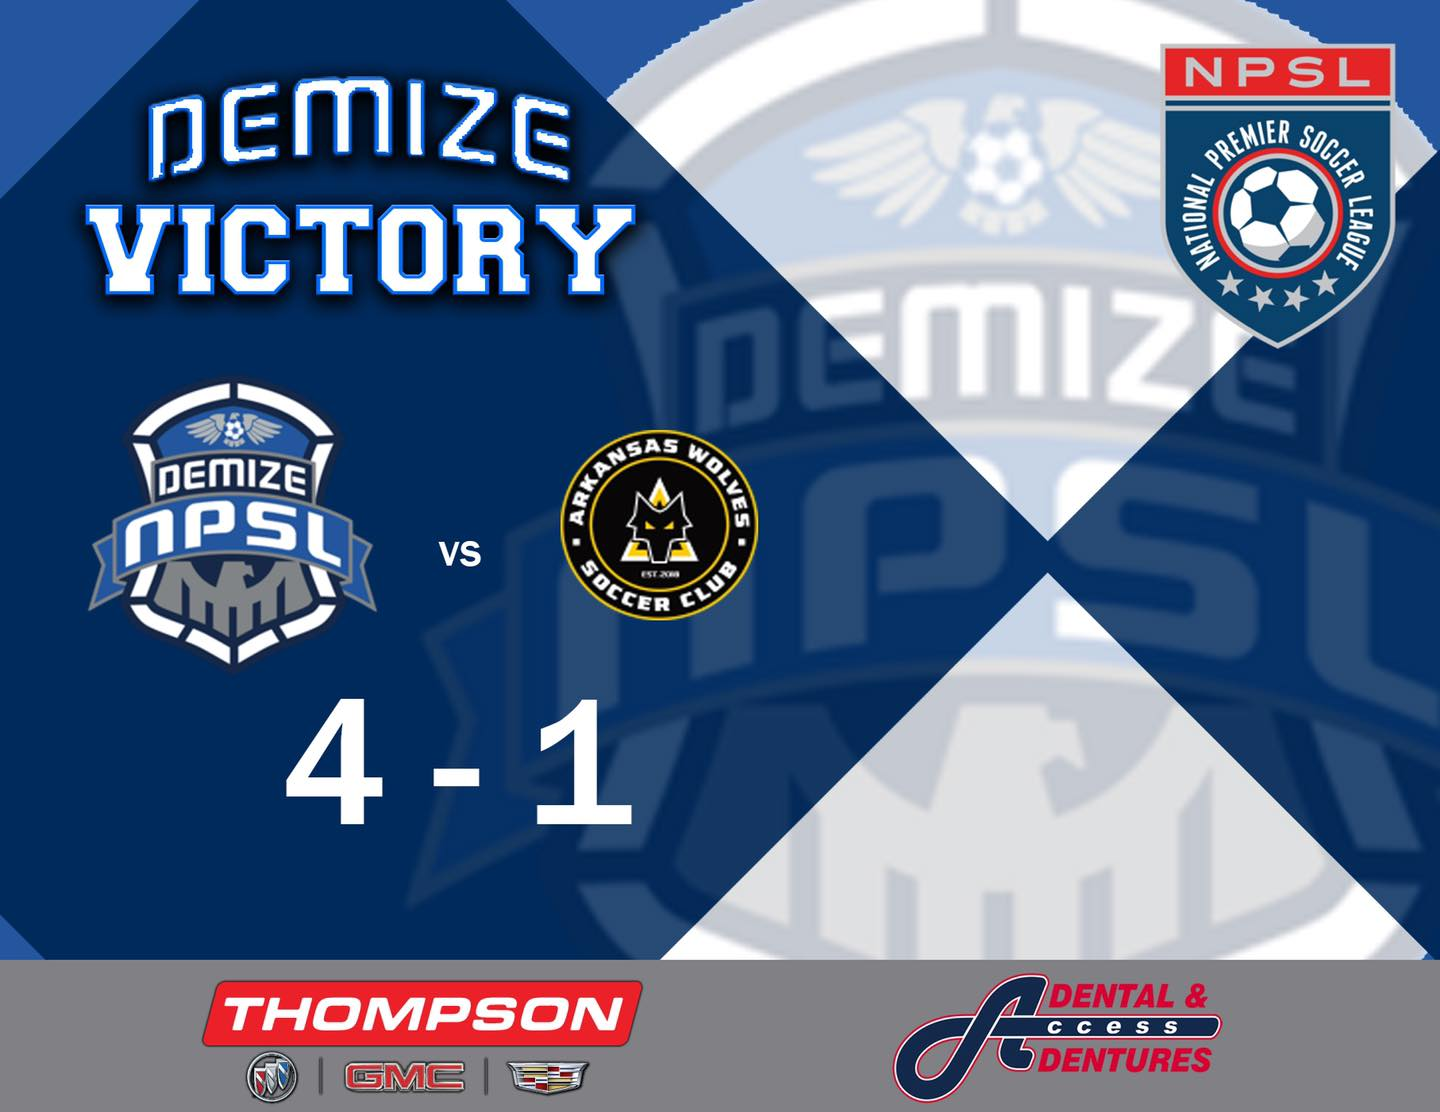 Demize win home opener in convincing fashion 4-1 over the Arkansas Wolves